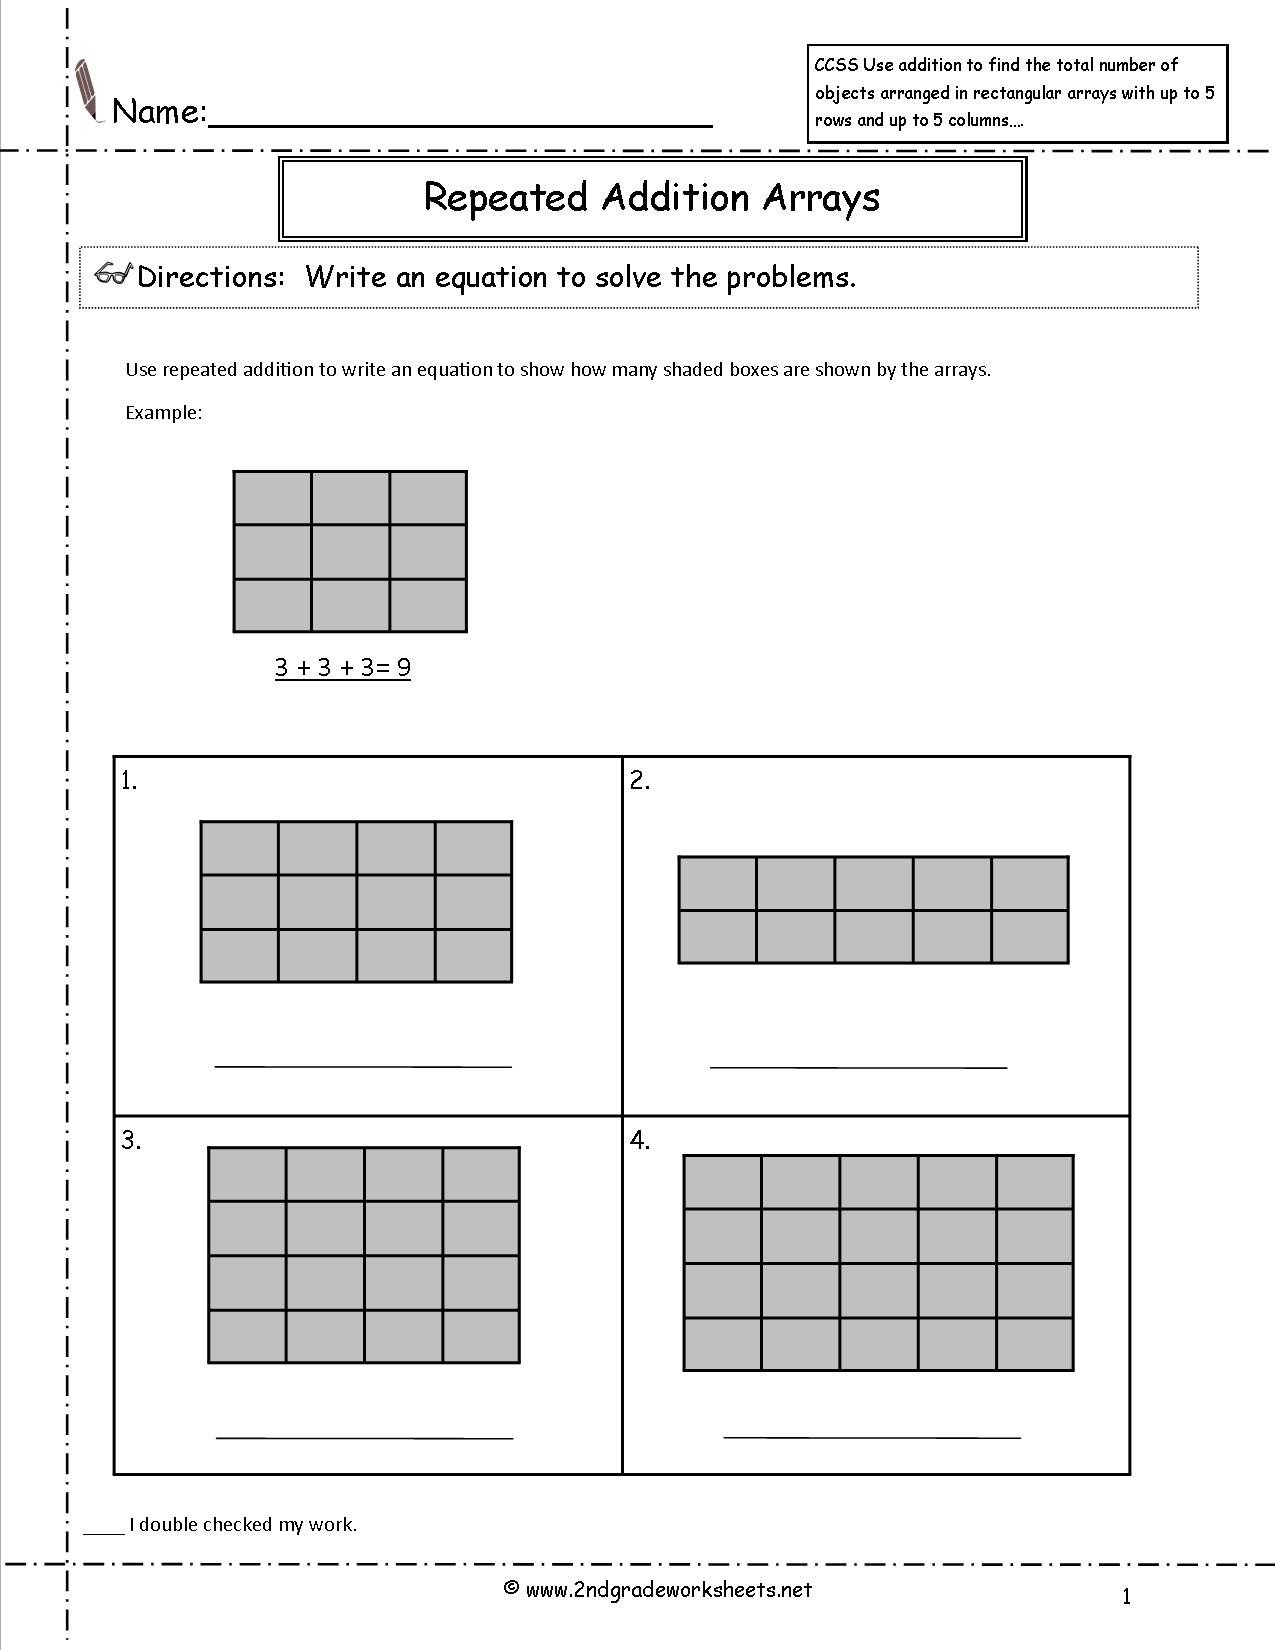 ccss 2 oa 4 worksheets with regard to multiplication worksheets as repeated addition